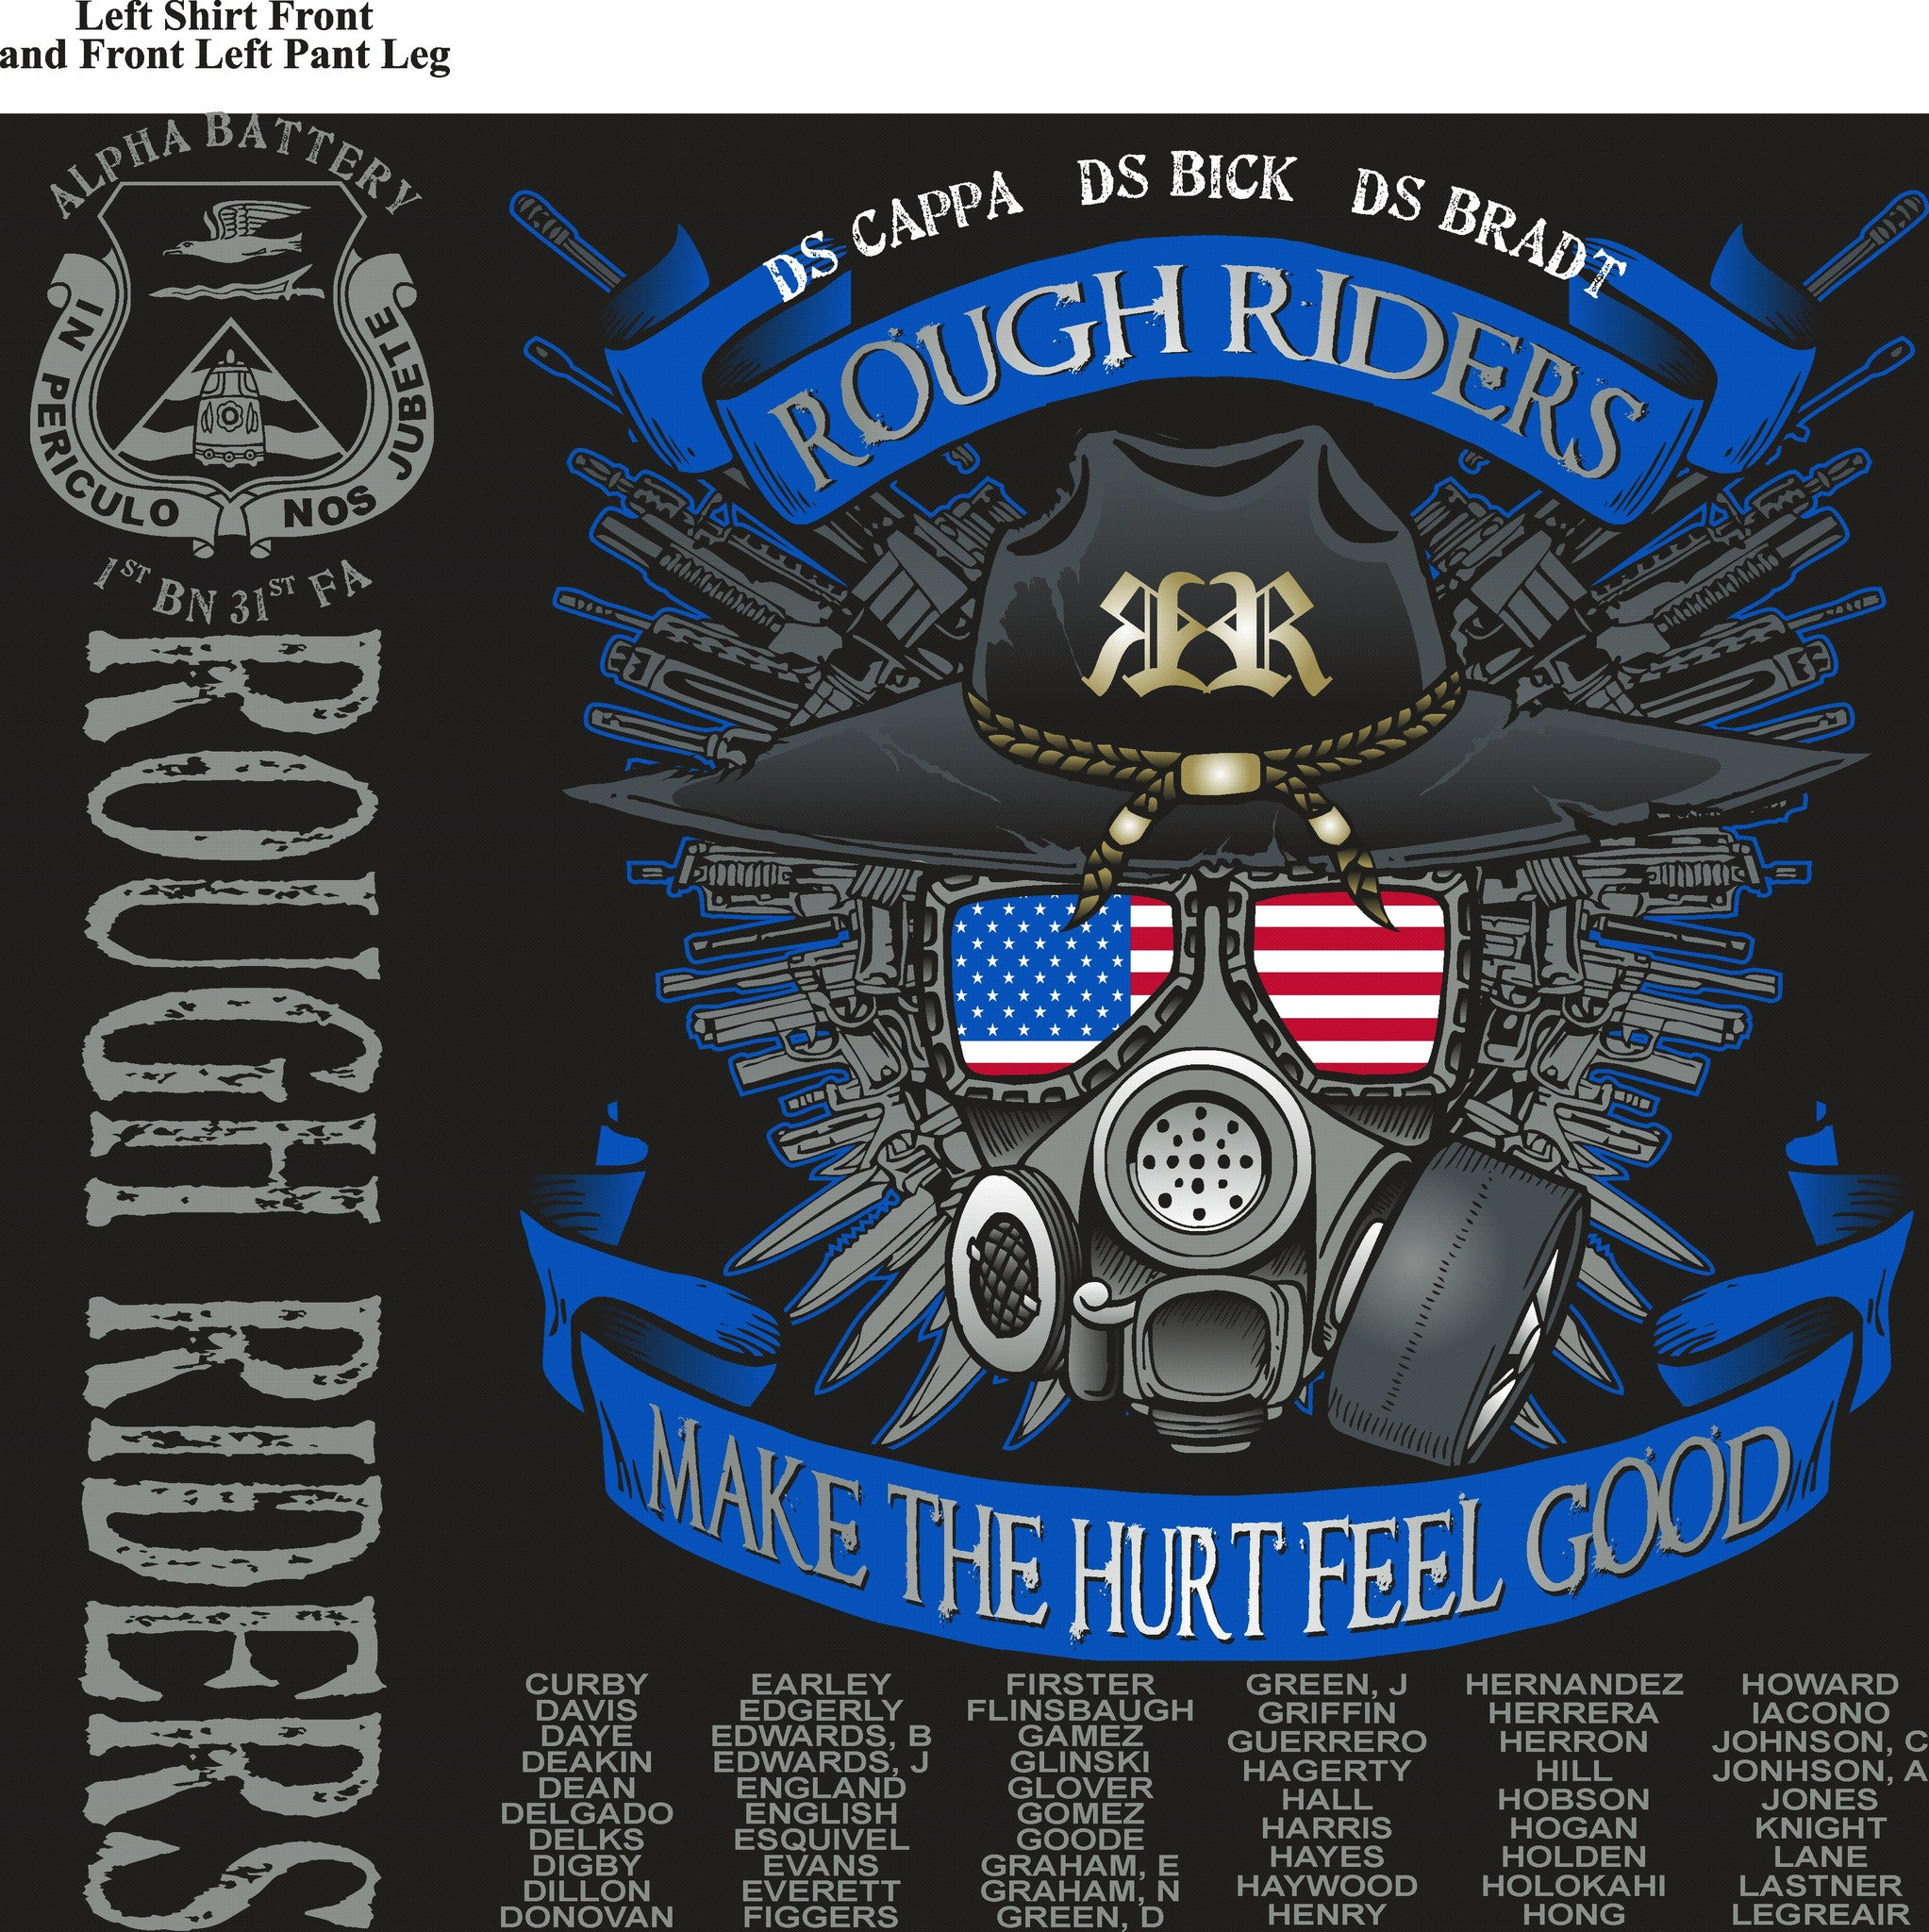 Platoon Shirts (digital) ALPHA 1st 31st ROUGH RIDERS OCT 2015